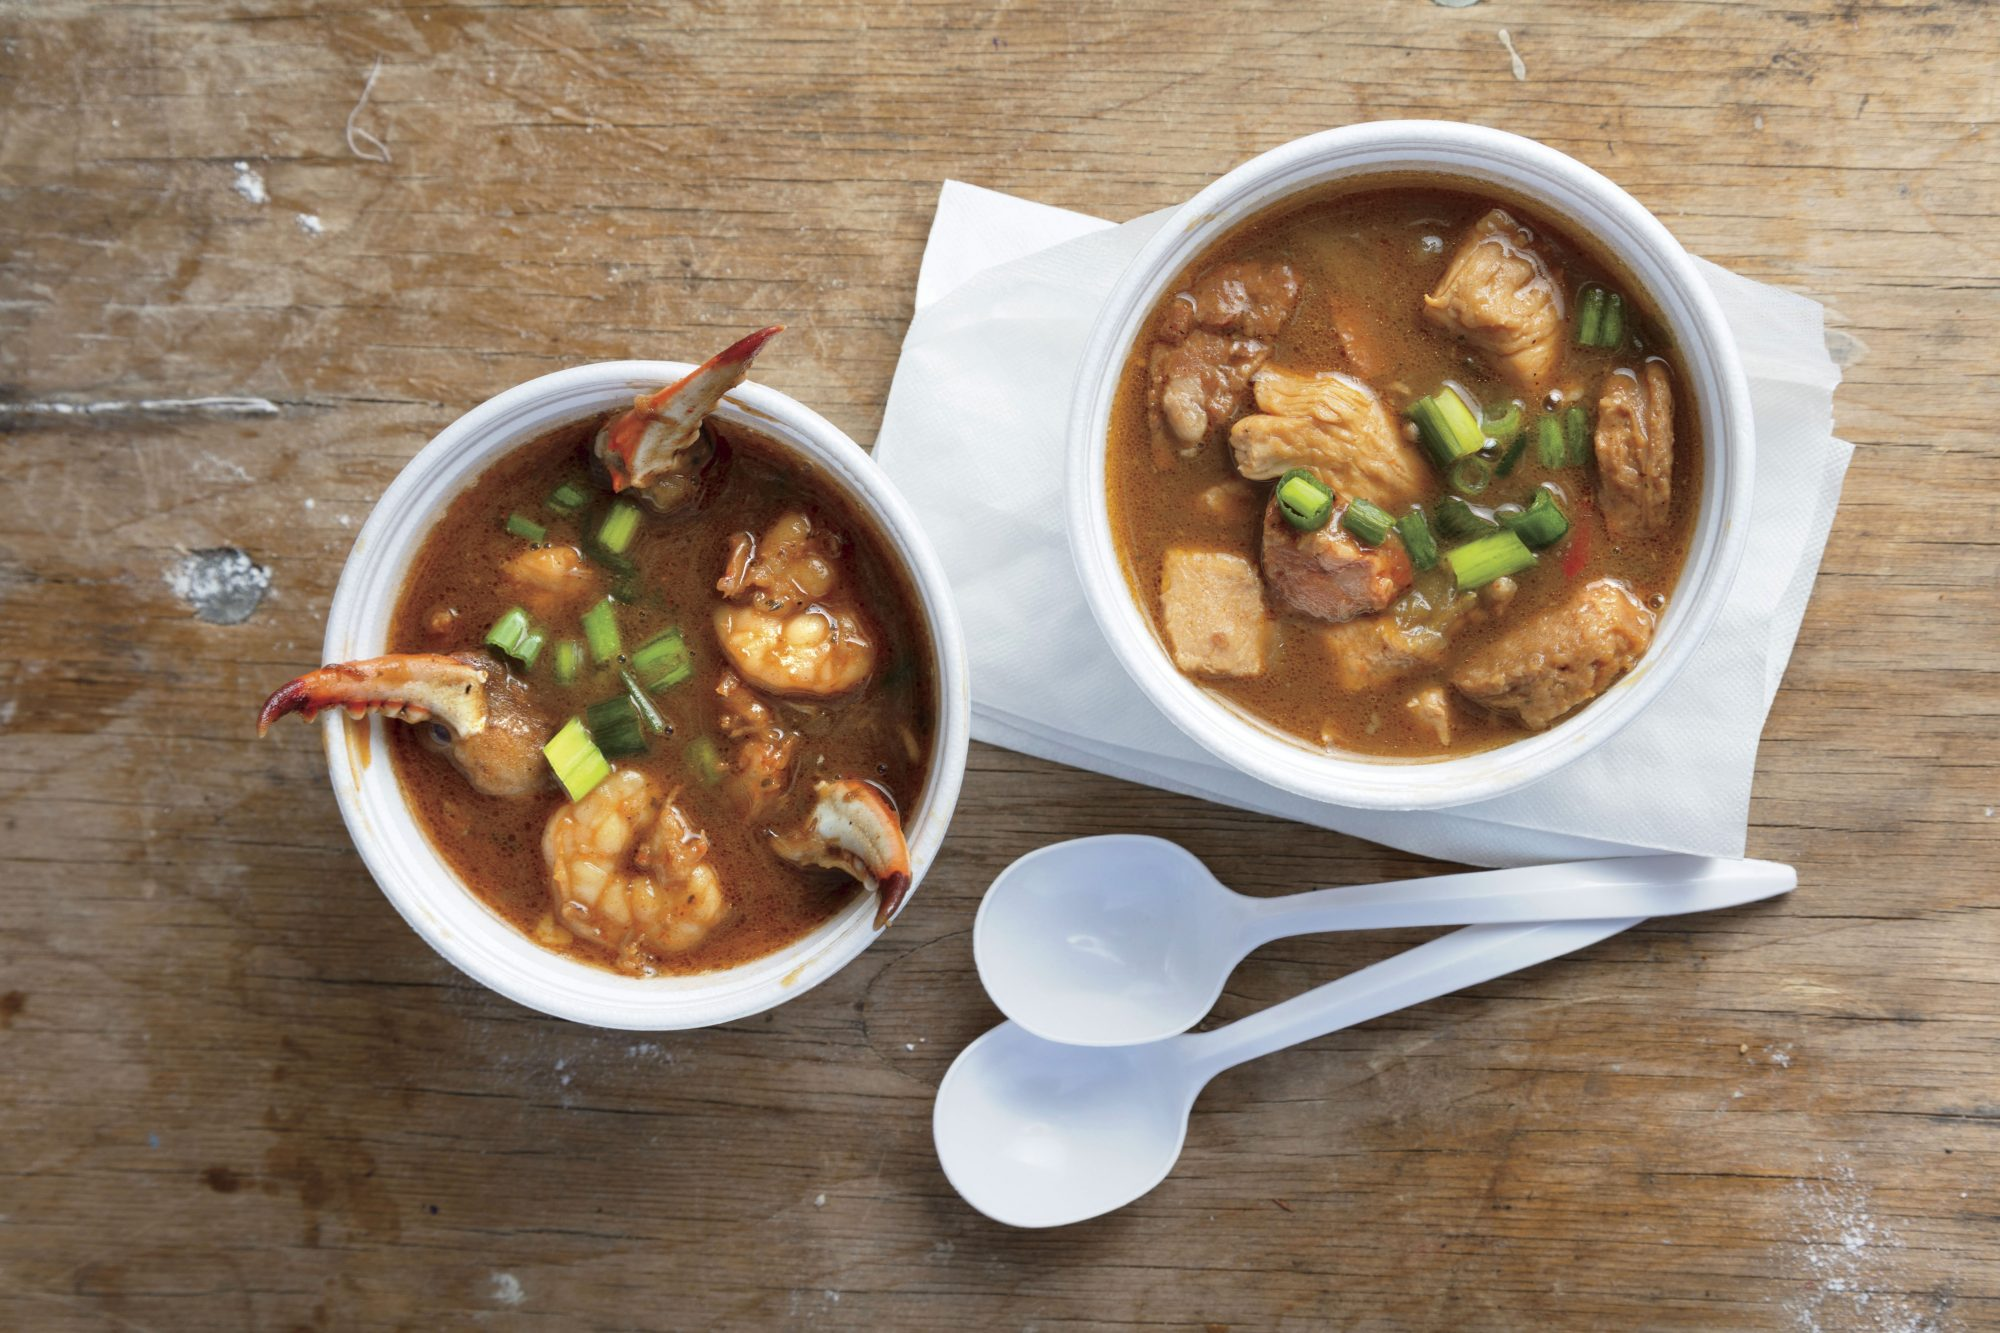 Bowls of Gumbo at the World Championship Gumbo Cookoff in New Iberia, LA